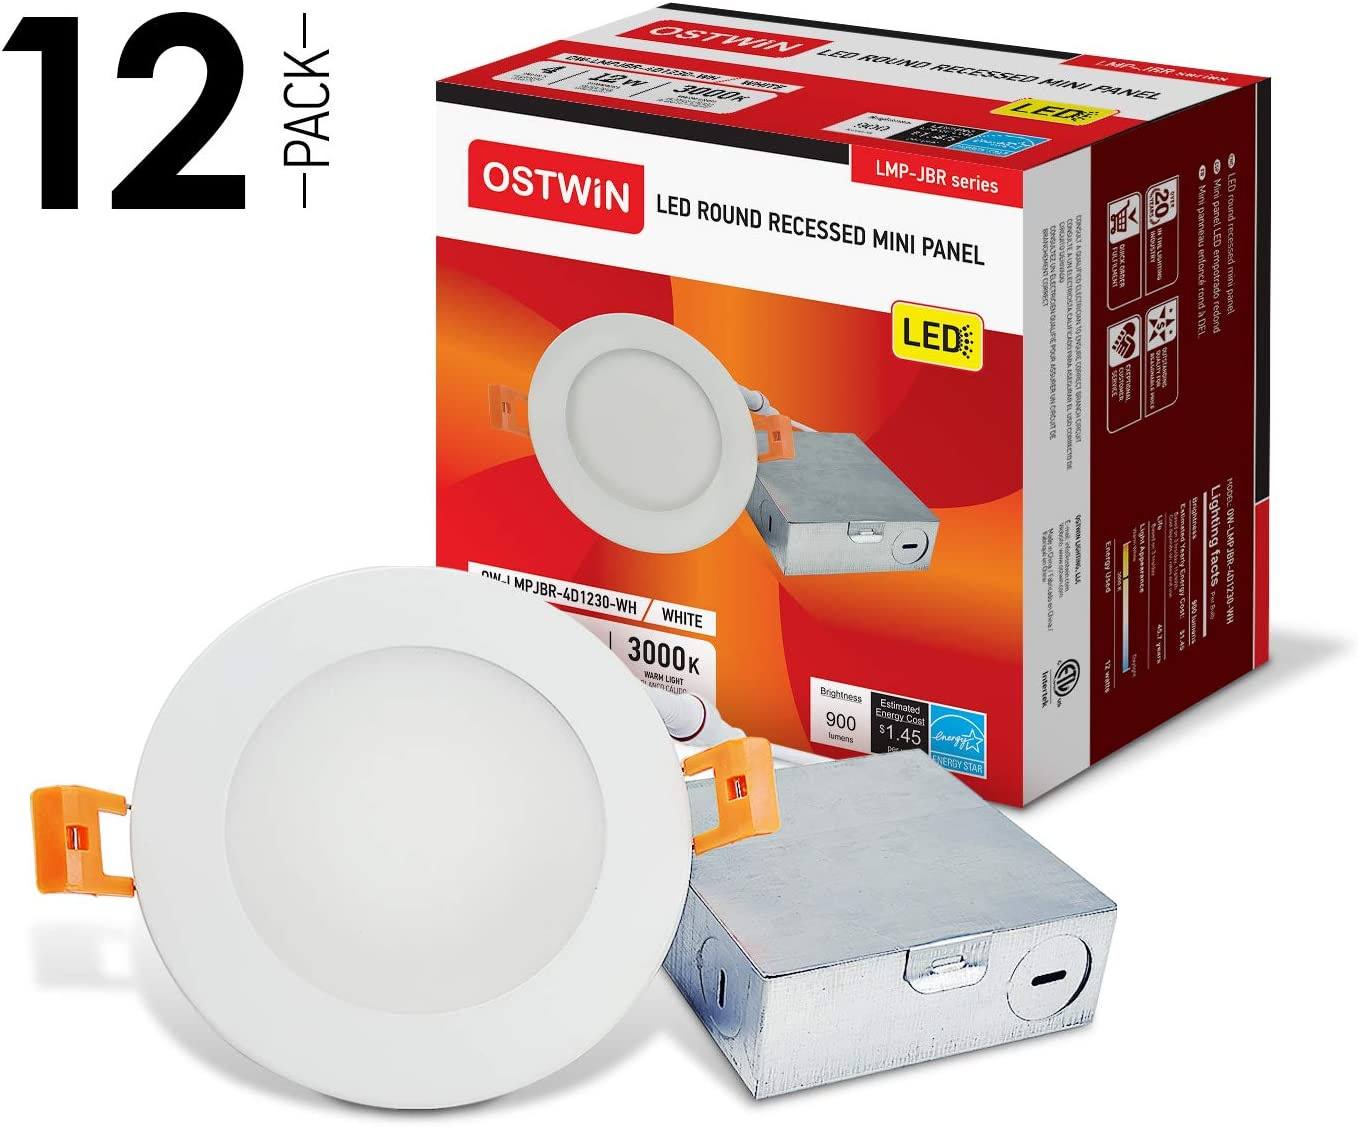 OSTWIN 4 Inch Ultra-Thin LED Recessed Ceiling Light with J-Box, 3000K, 12W (60 Watt Repl) Dimmable Can-Killer Downlight, IC Rated 900LM High Brightness (12 Pack) ETL and Energy Star Certified